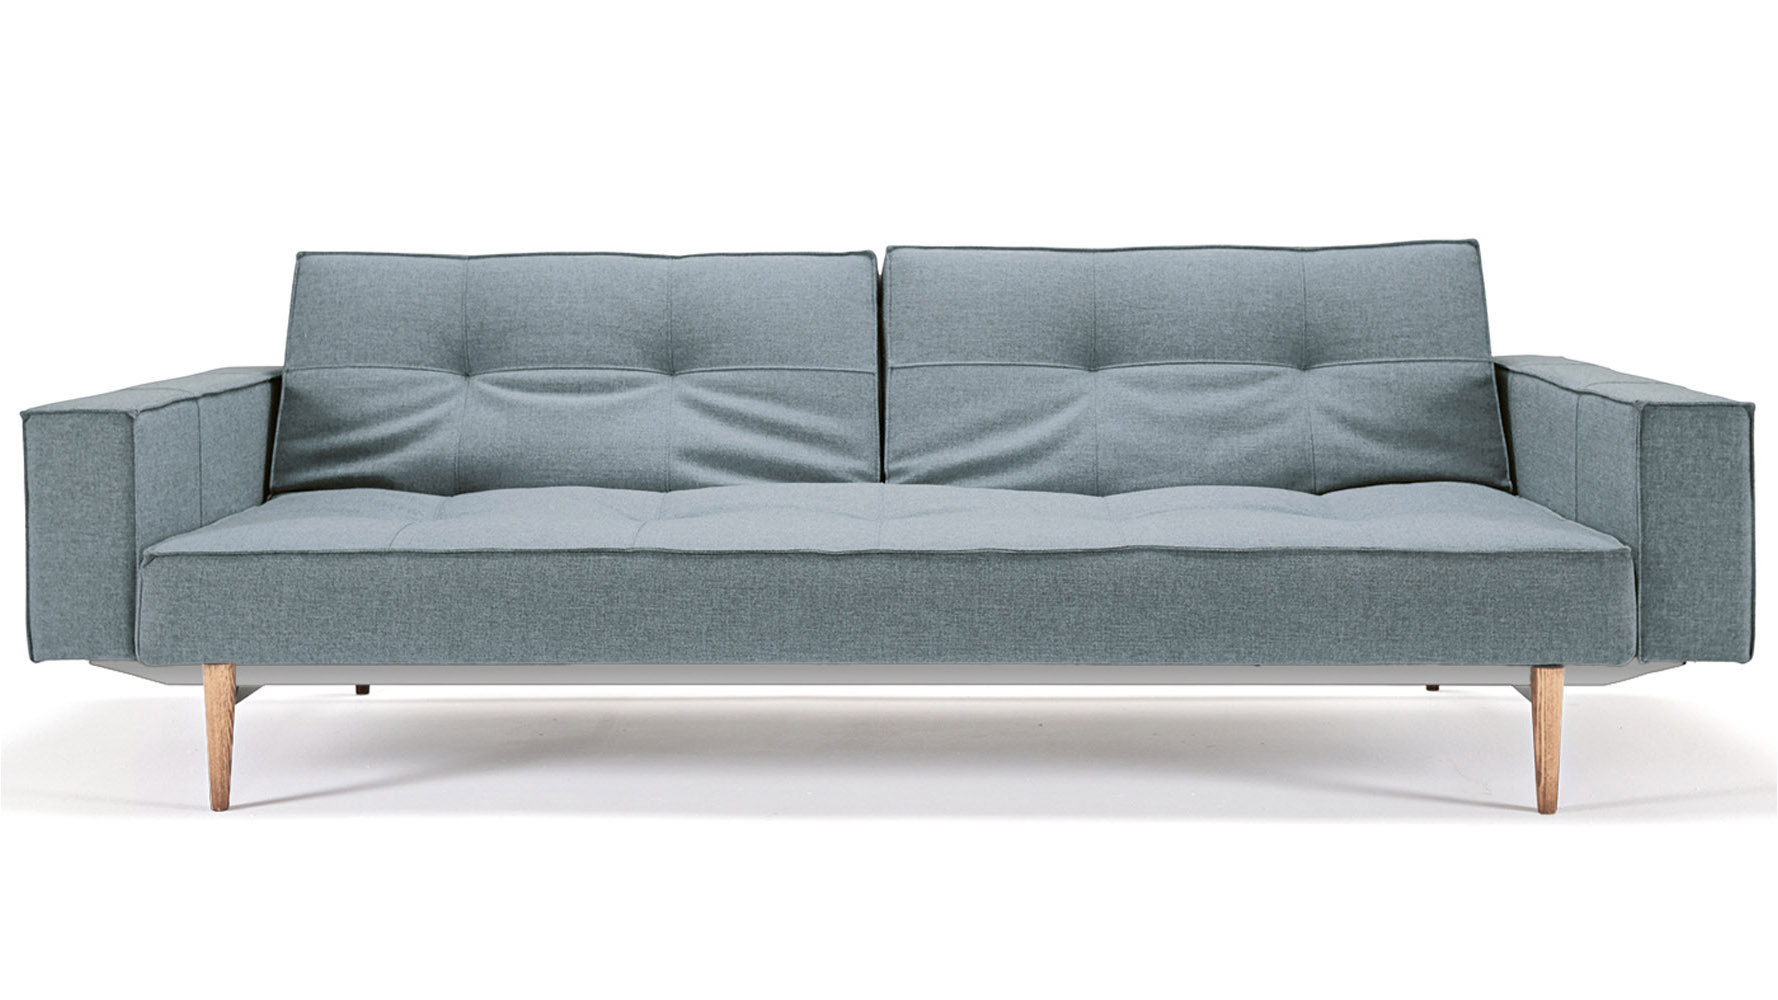 Marvelous photograph of  LIVING / Sleepers / Sofi Split Back Sofabed with Armrests Wood Base with #756456 color and 1778x1000 pixels